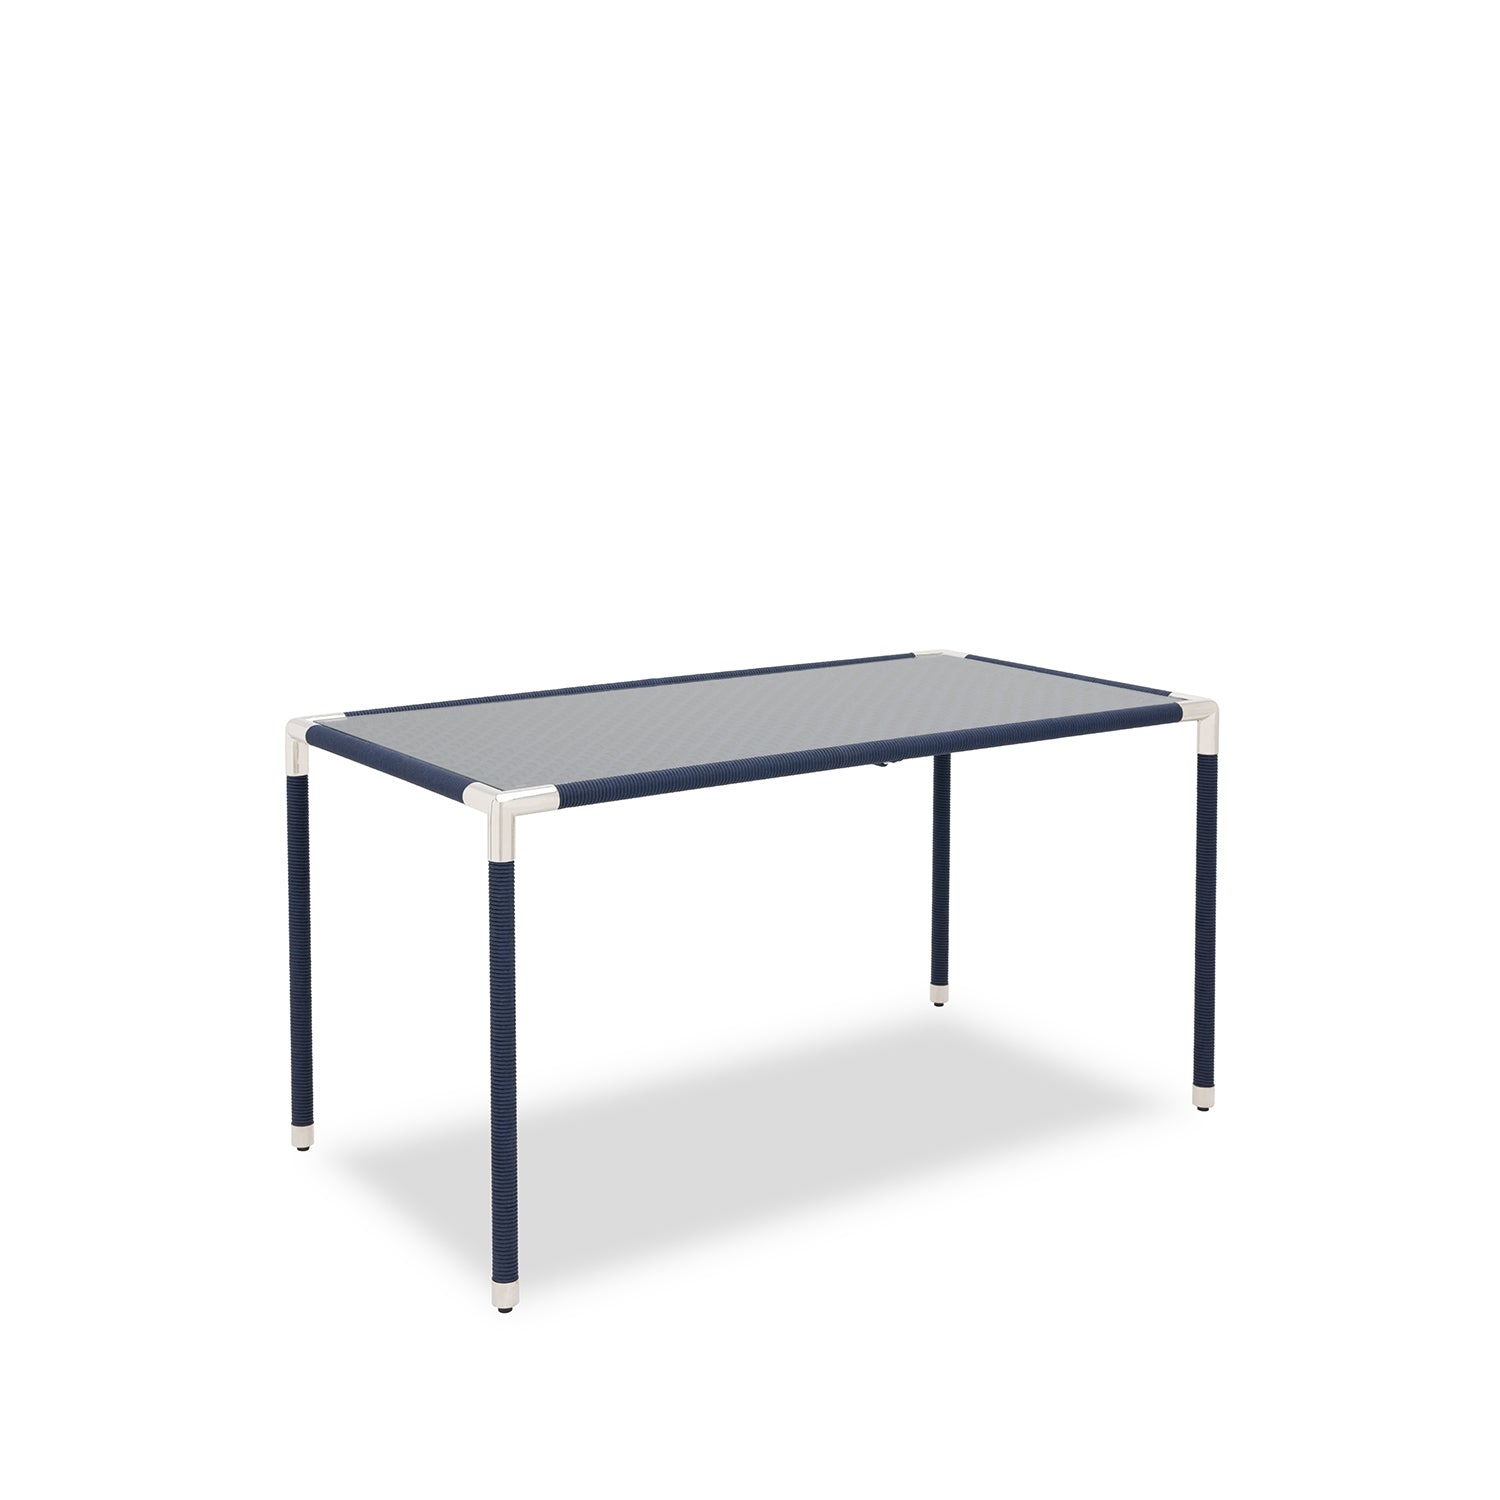 Marina 140cm Dining Table